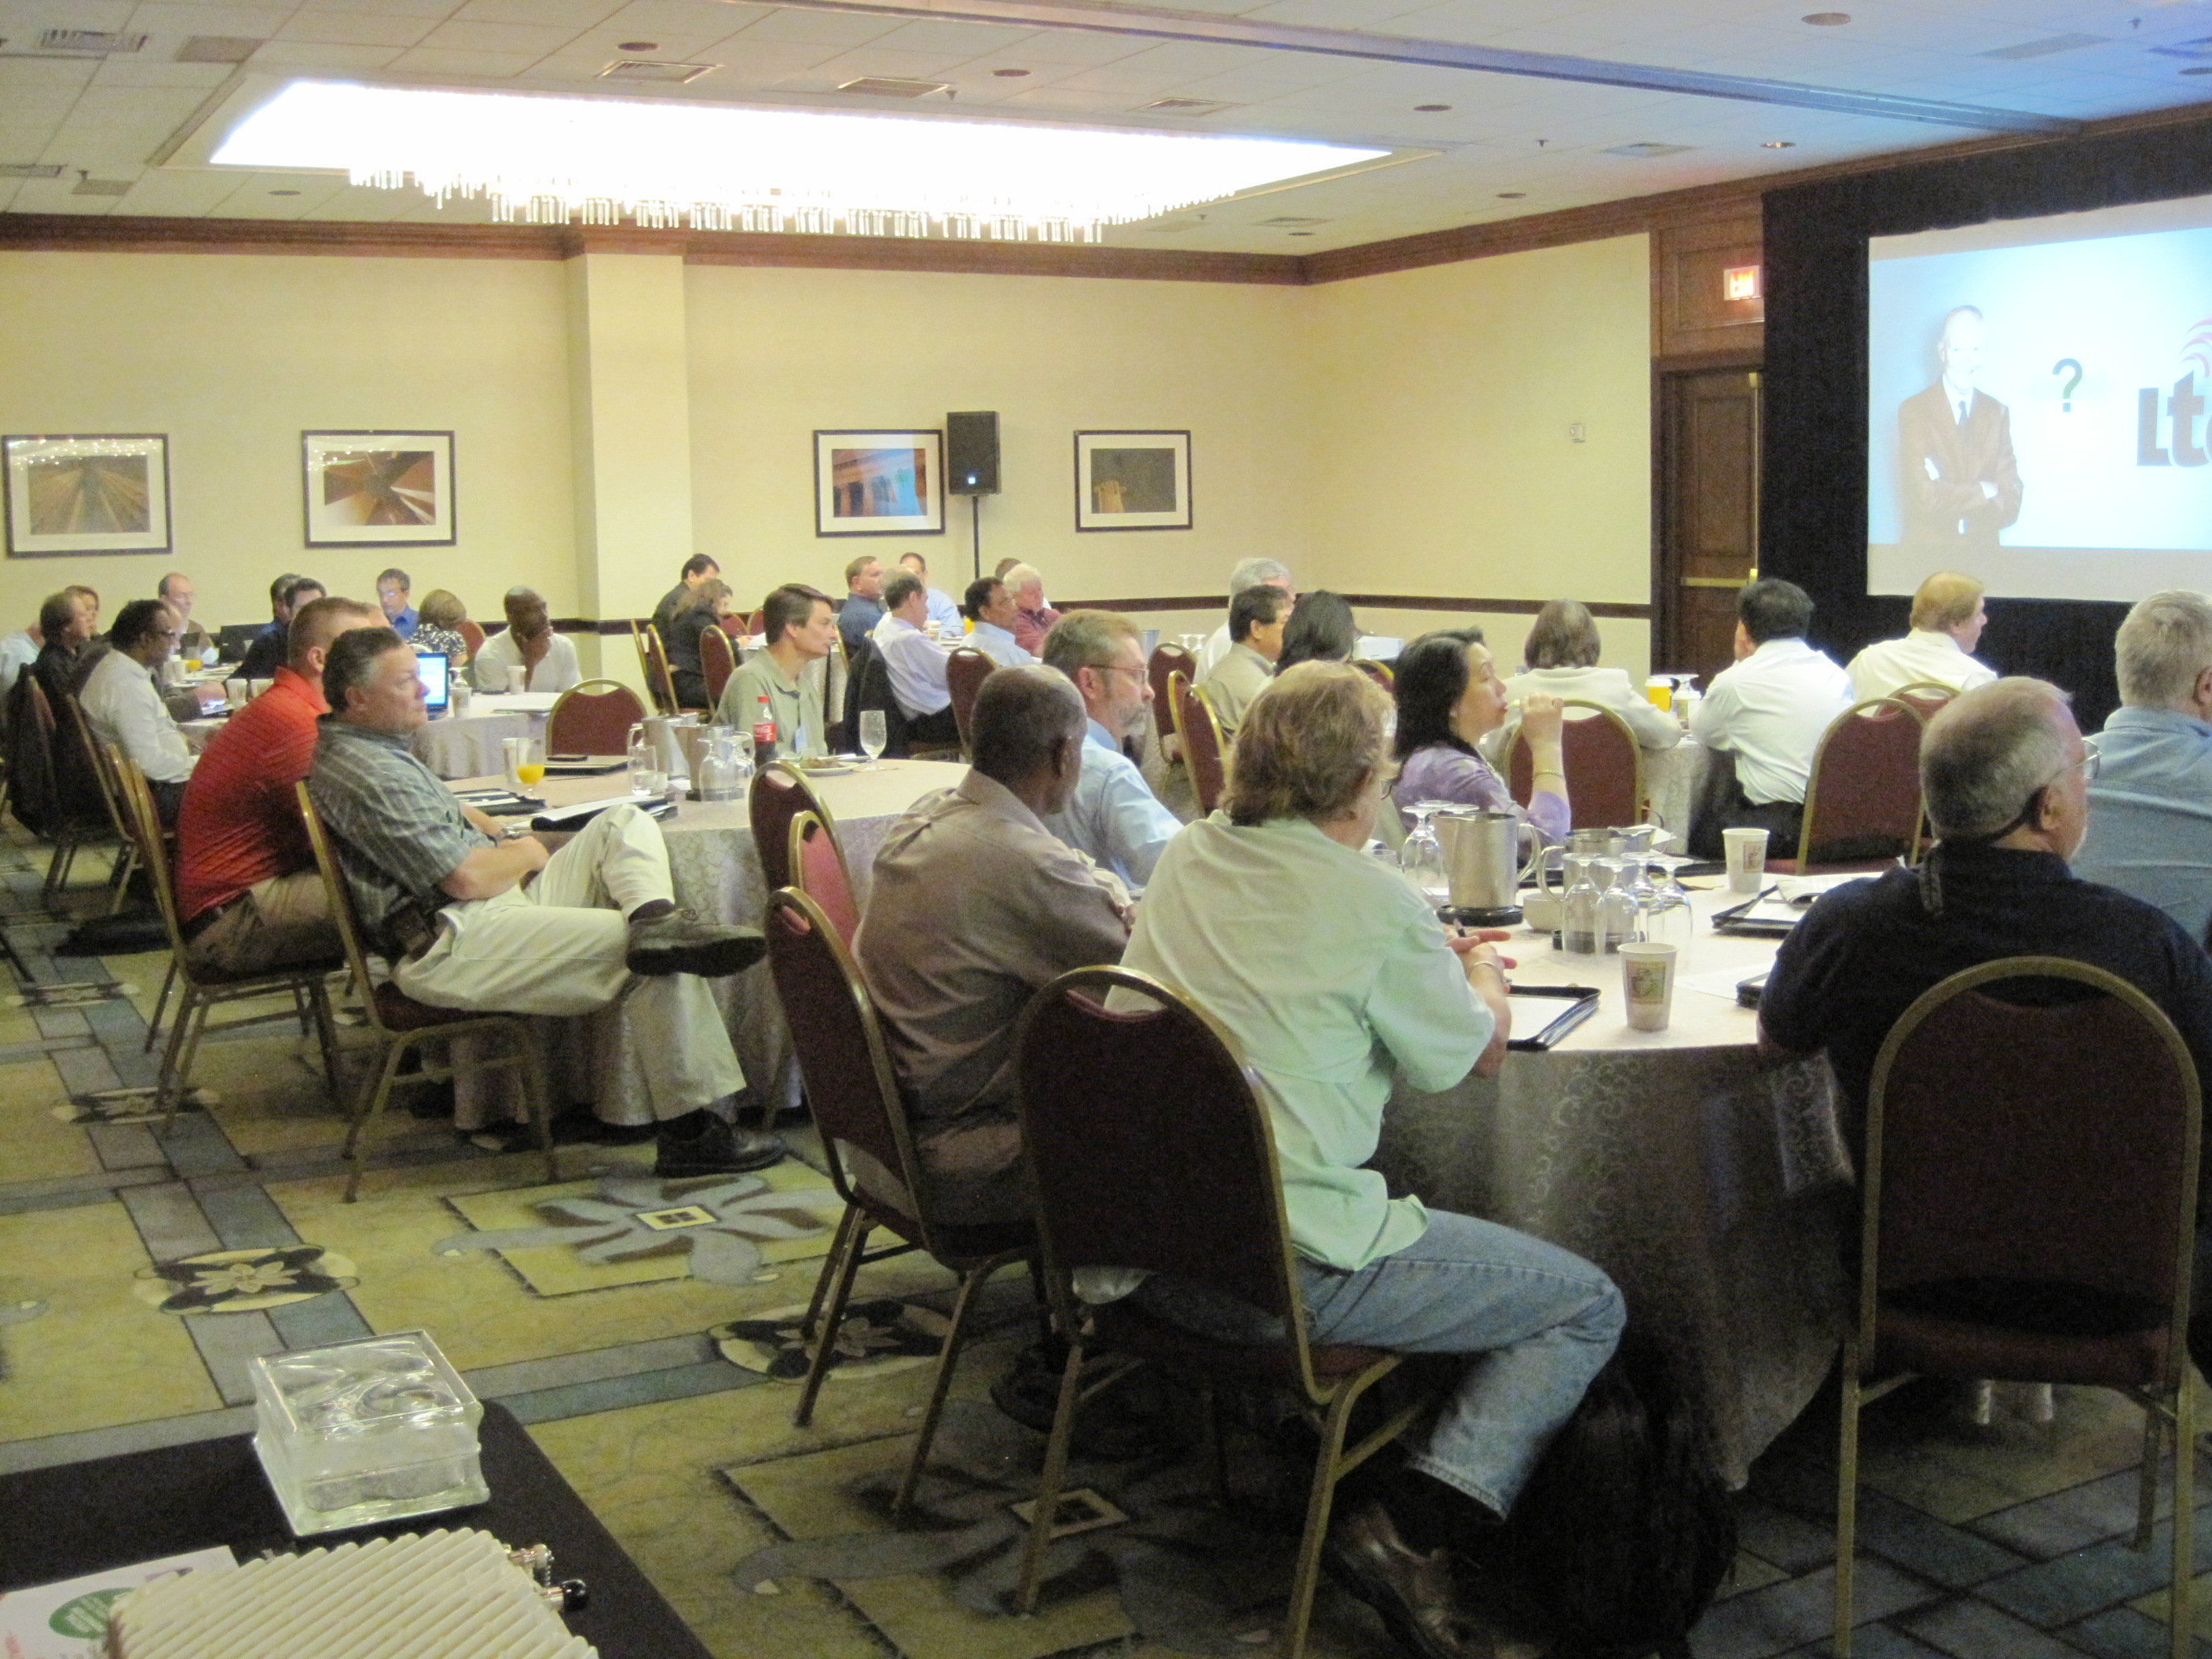 Microwave Networking seminar hosted by Aviat Networks in Washington D.C. Sept 2012